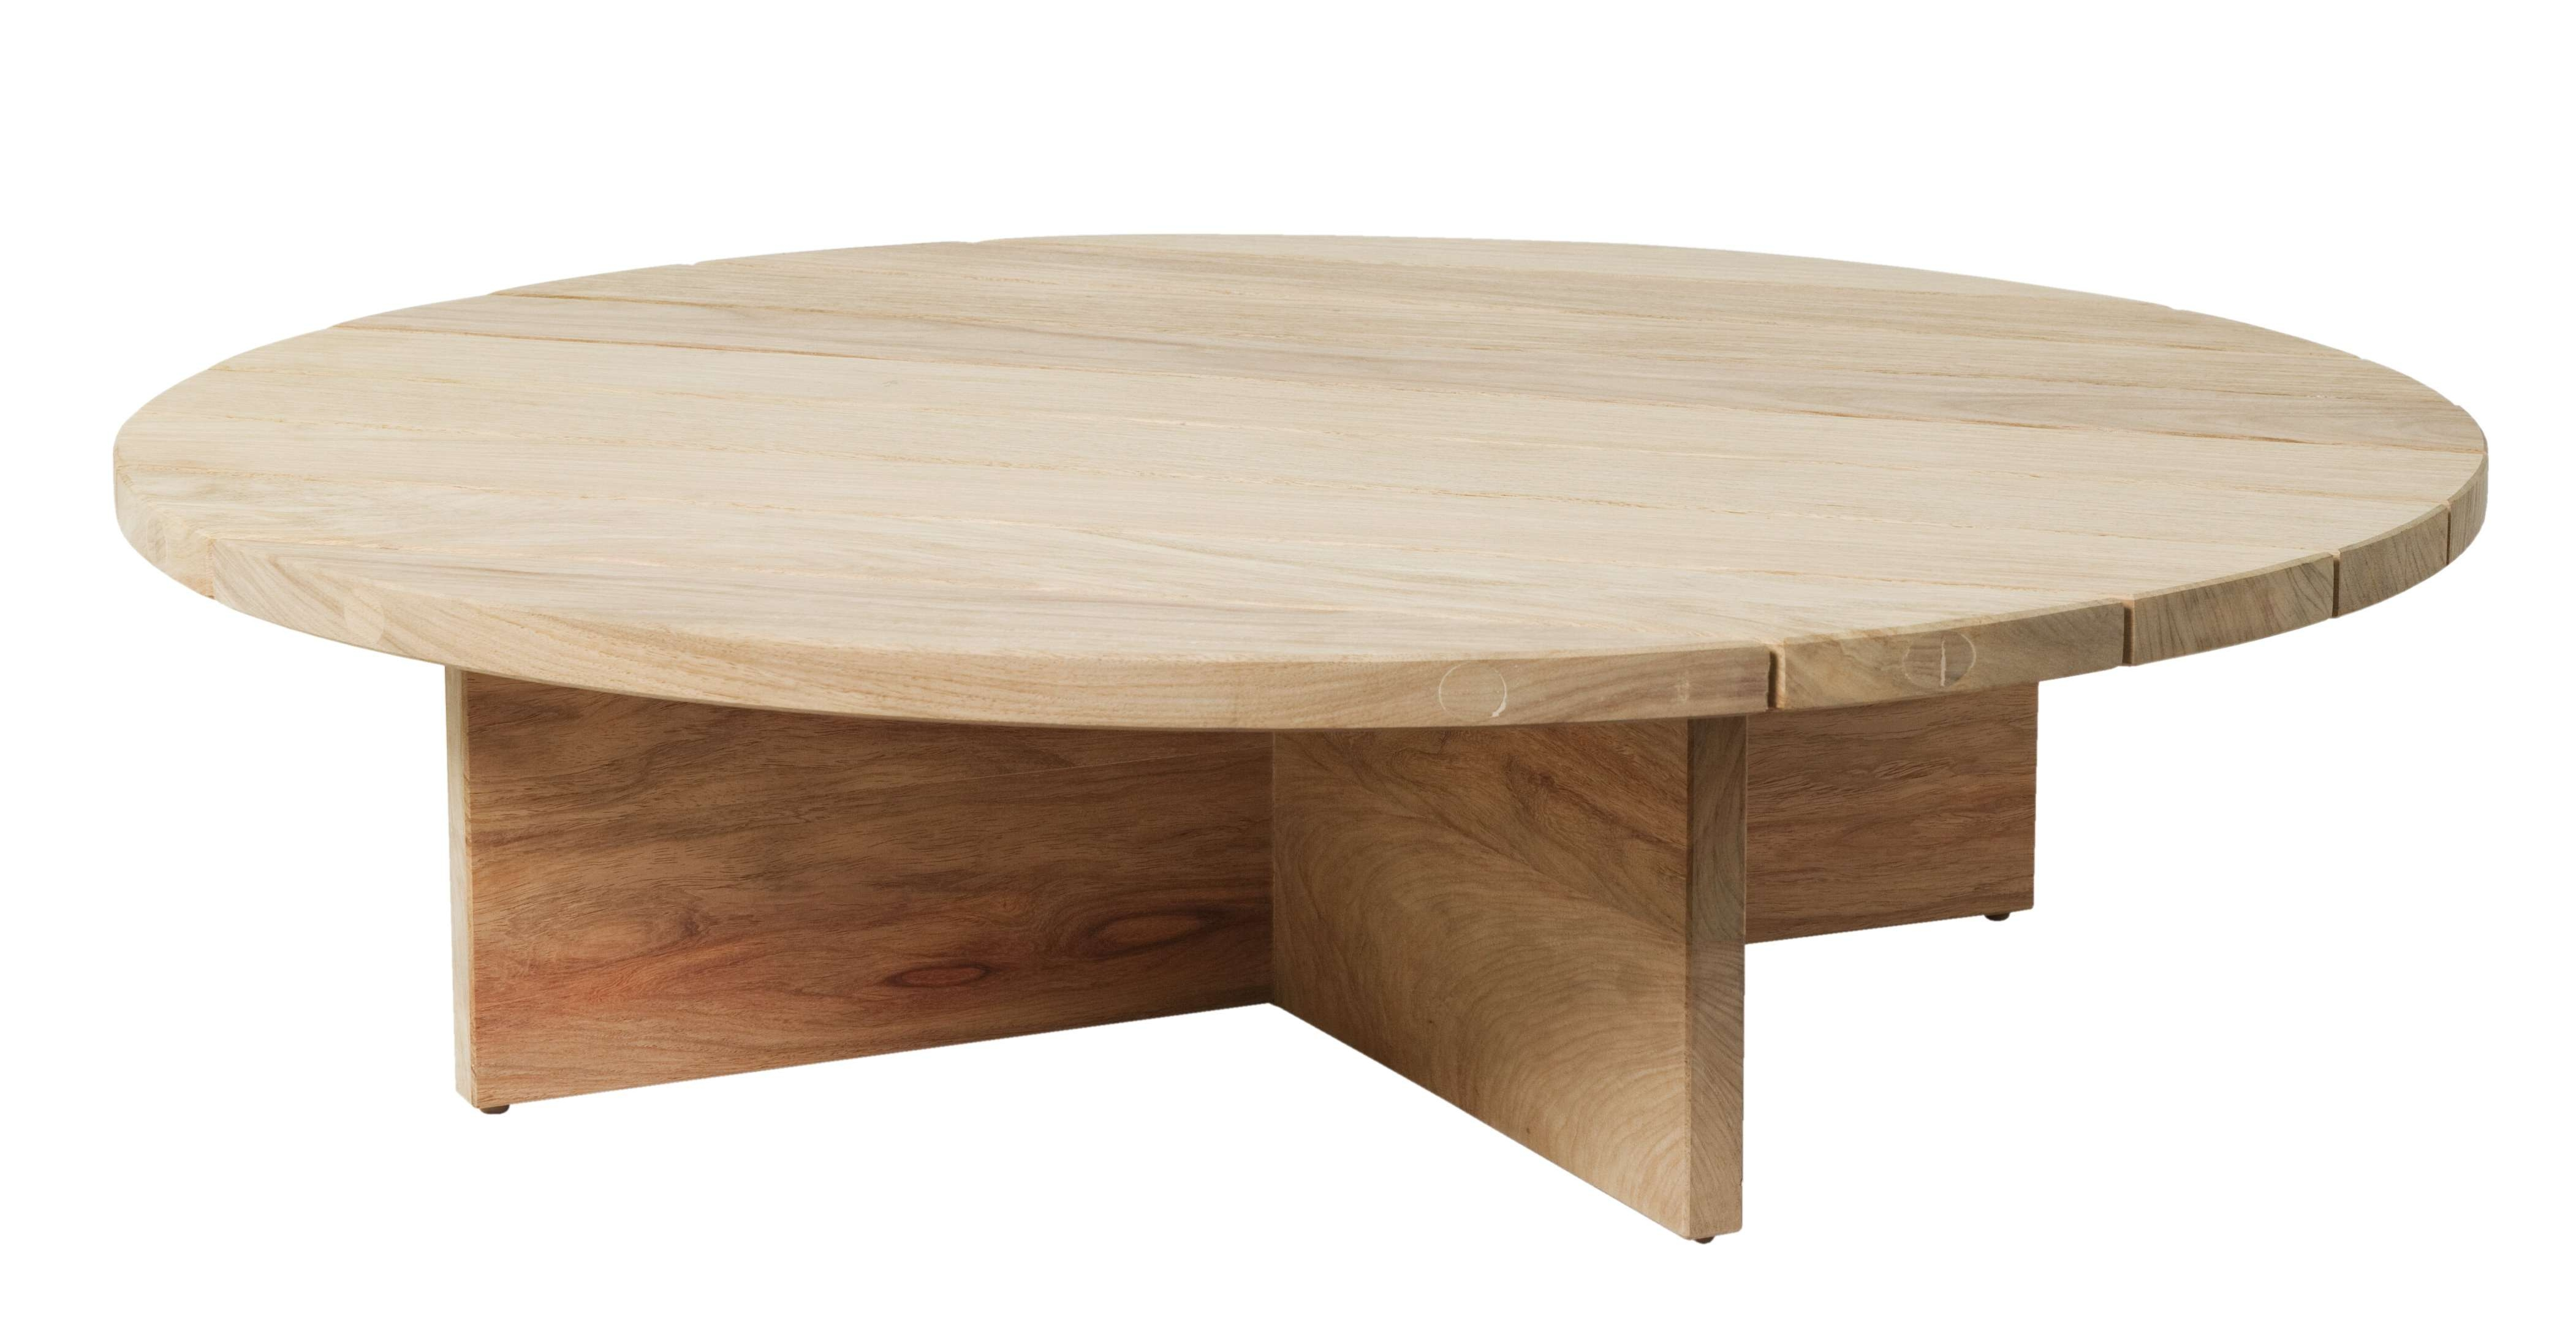 Coffee Tables : Table Coffee Cream With Glass Top Large Round Wood With Regard To Favorite Large Low Coffee Tables (View 8 of 20)